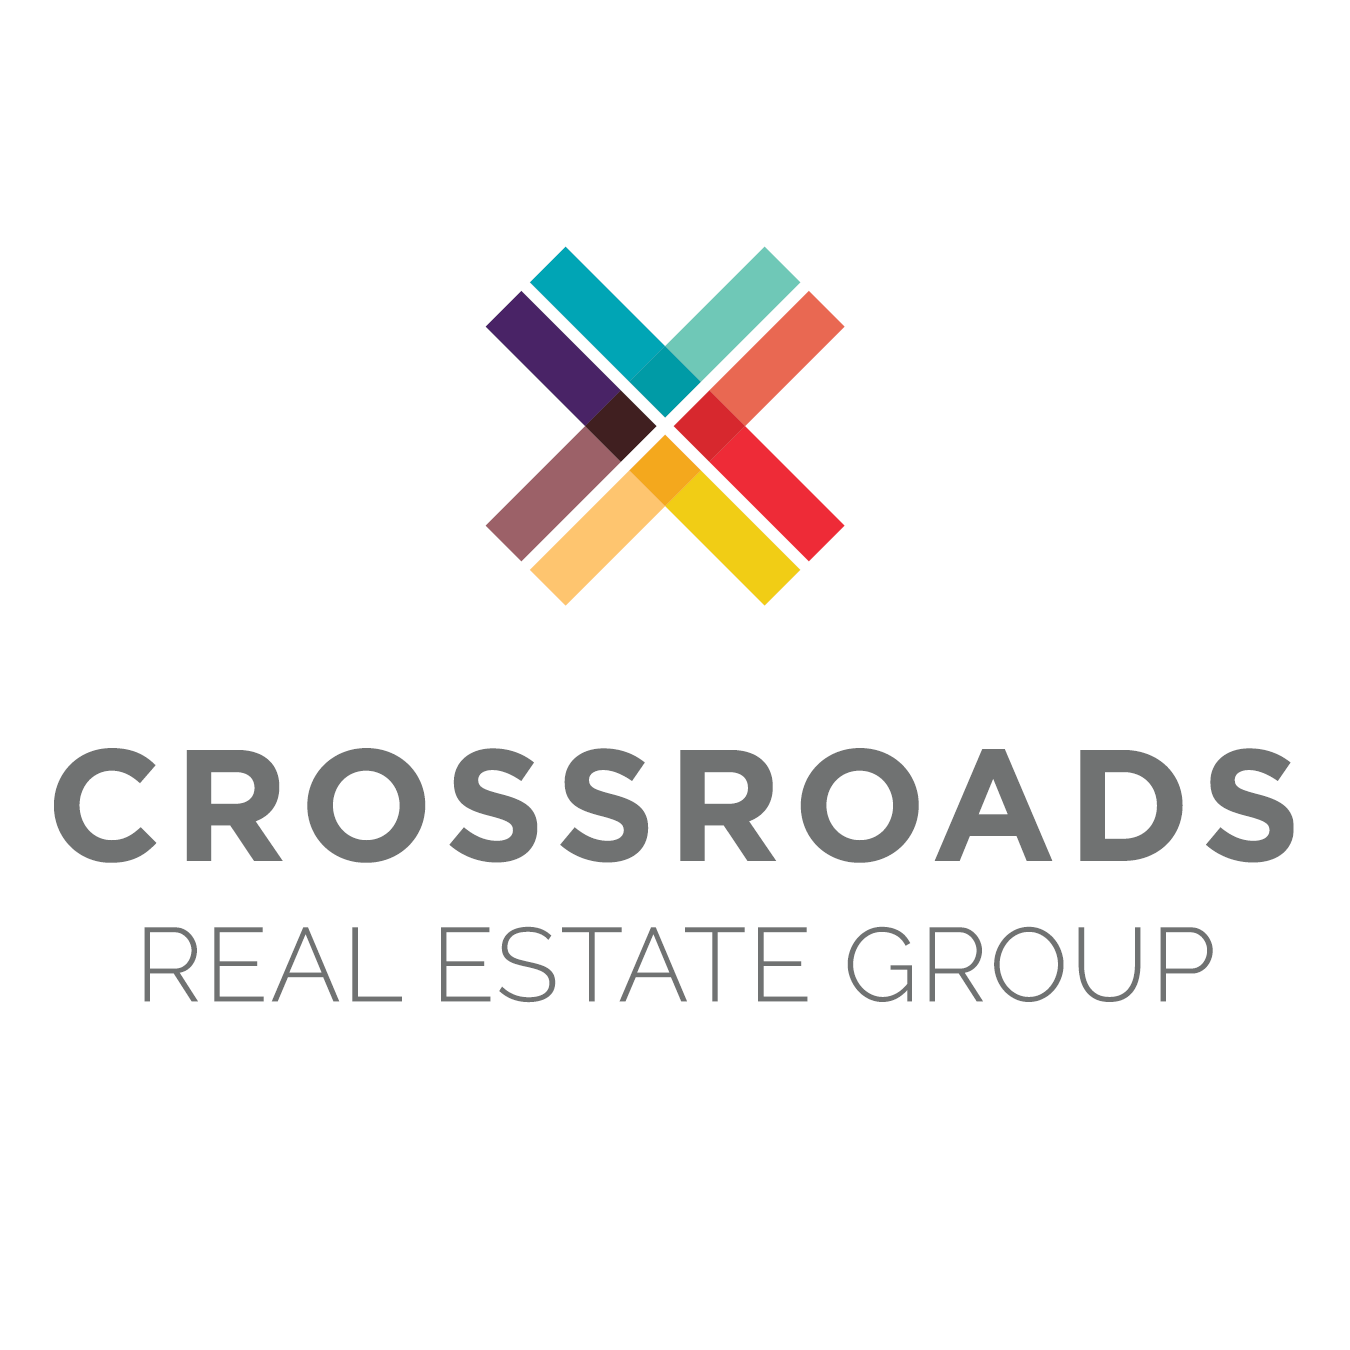 Crossroads Real Estate